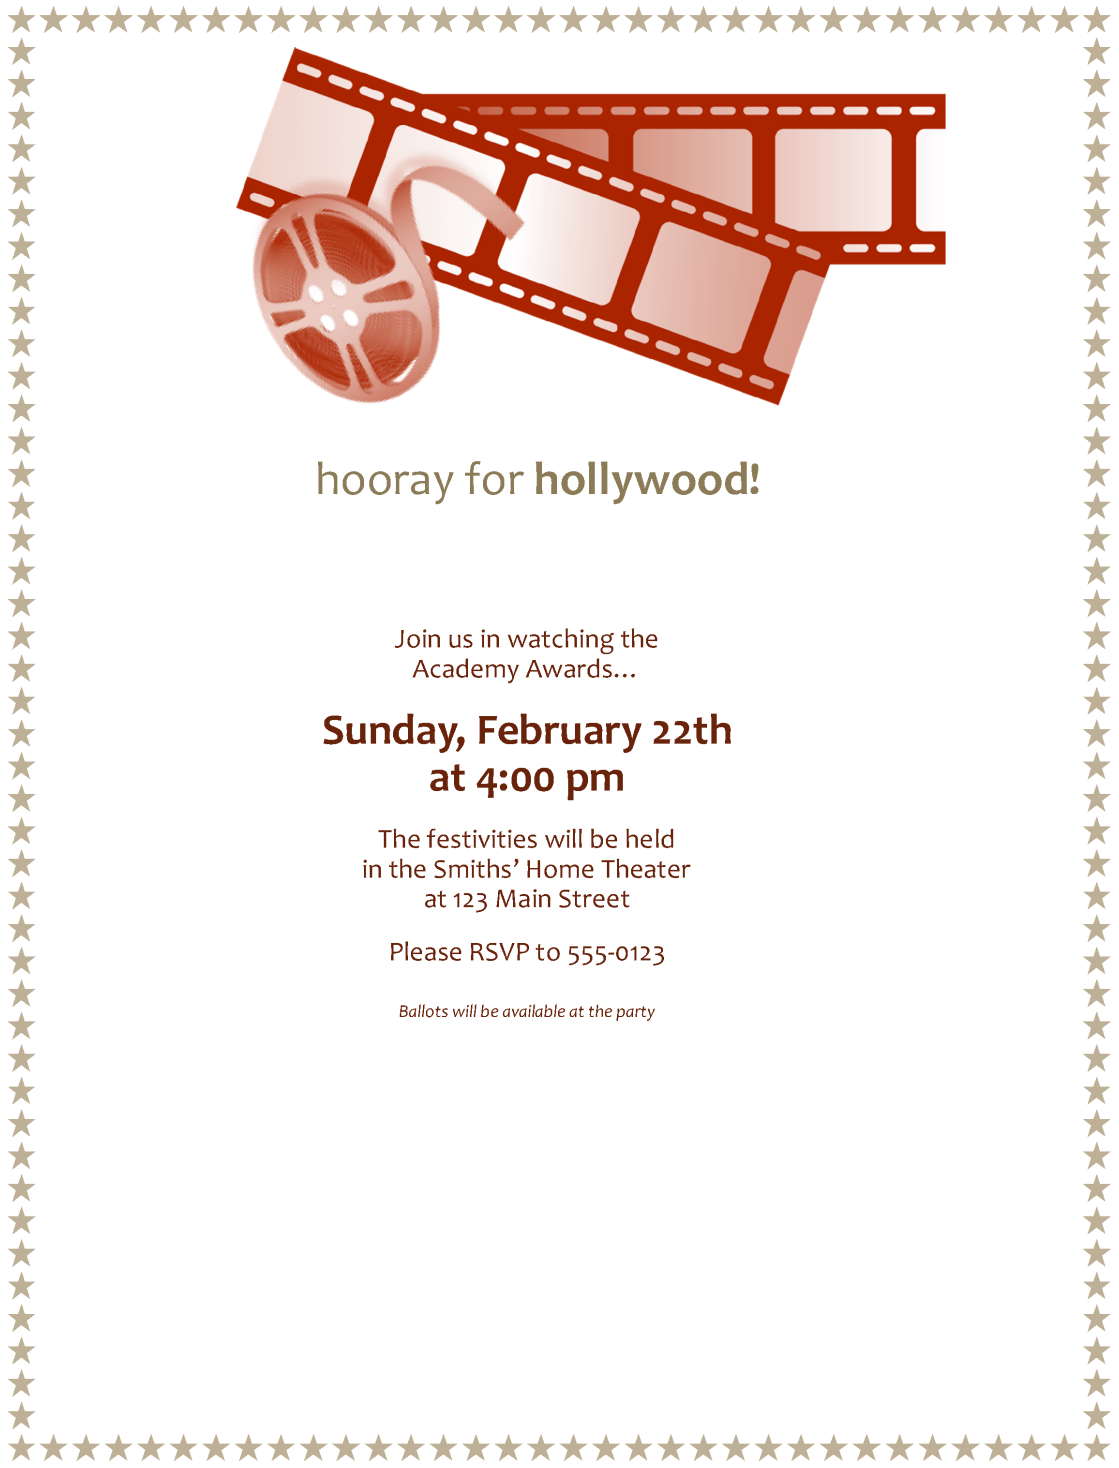 Movie awards party invitation Template